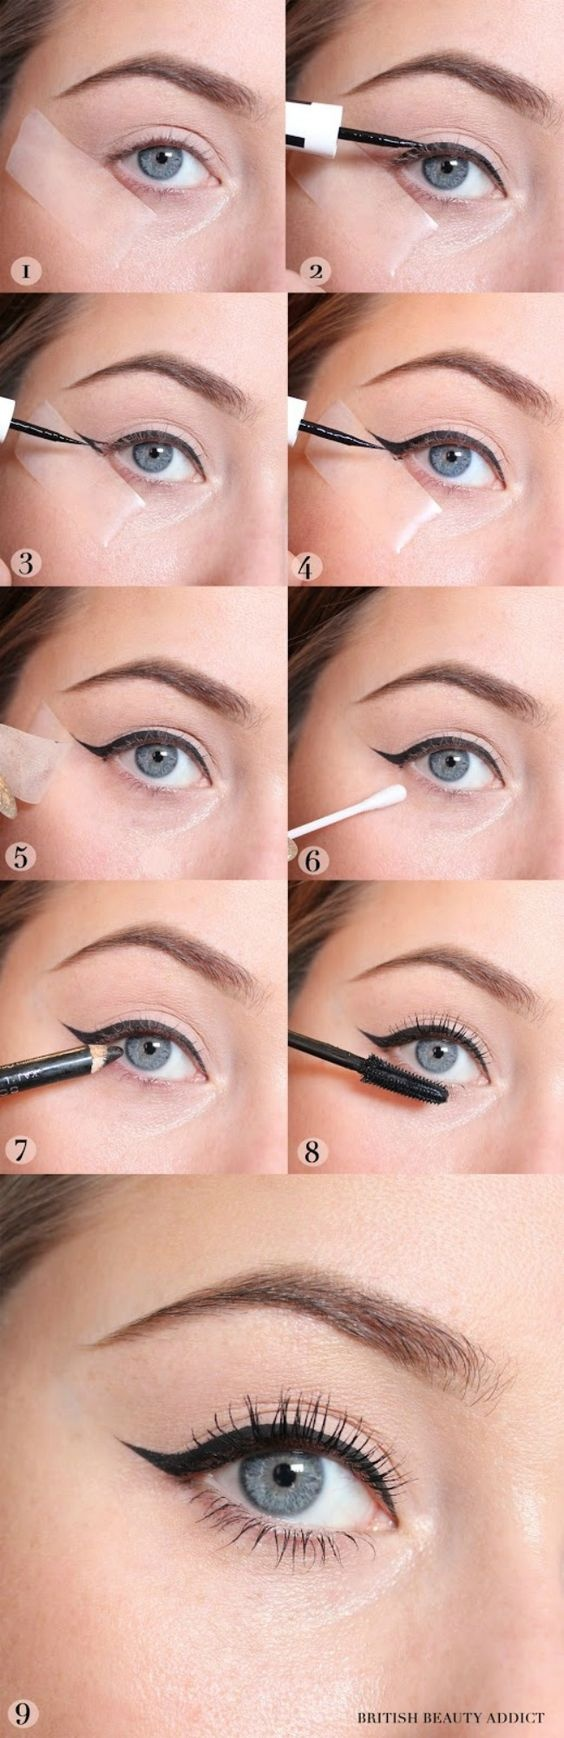 How to apply winged eyeliner - Quora